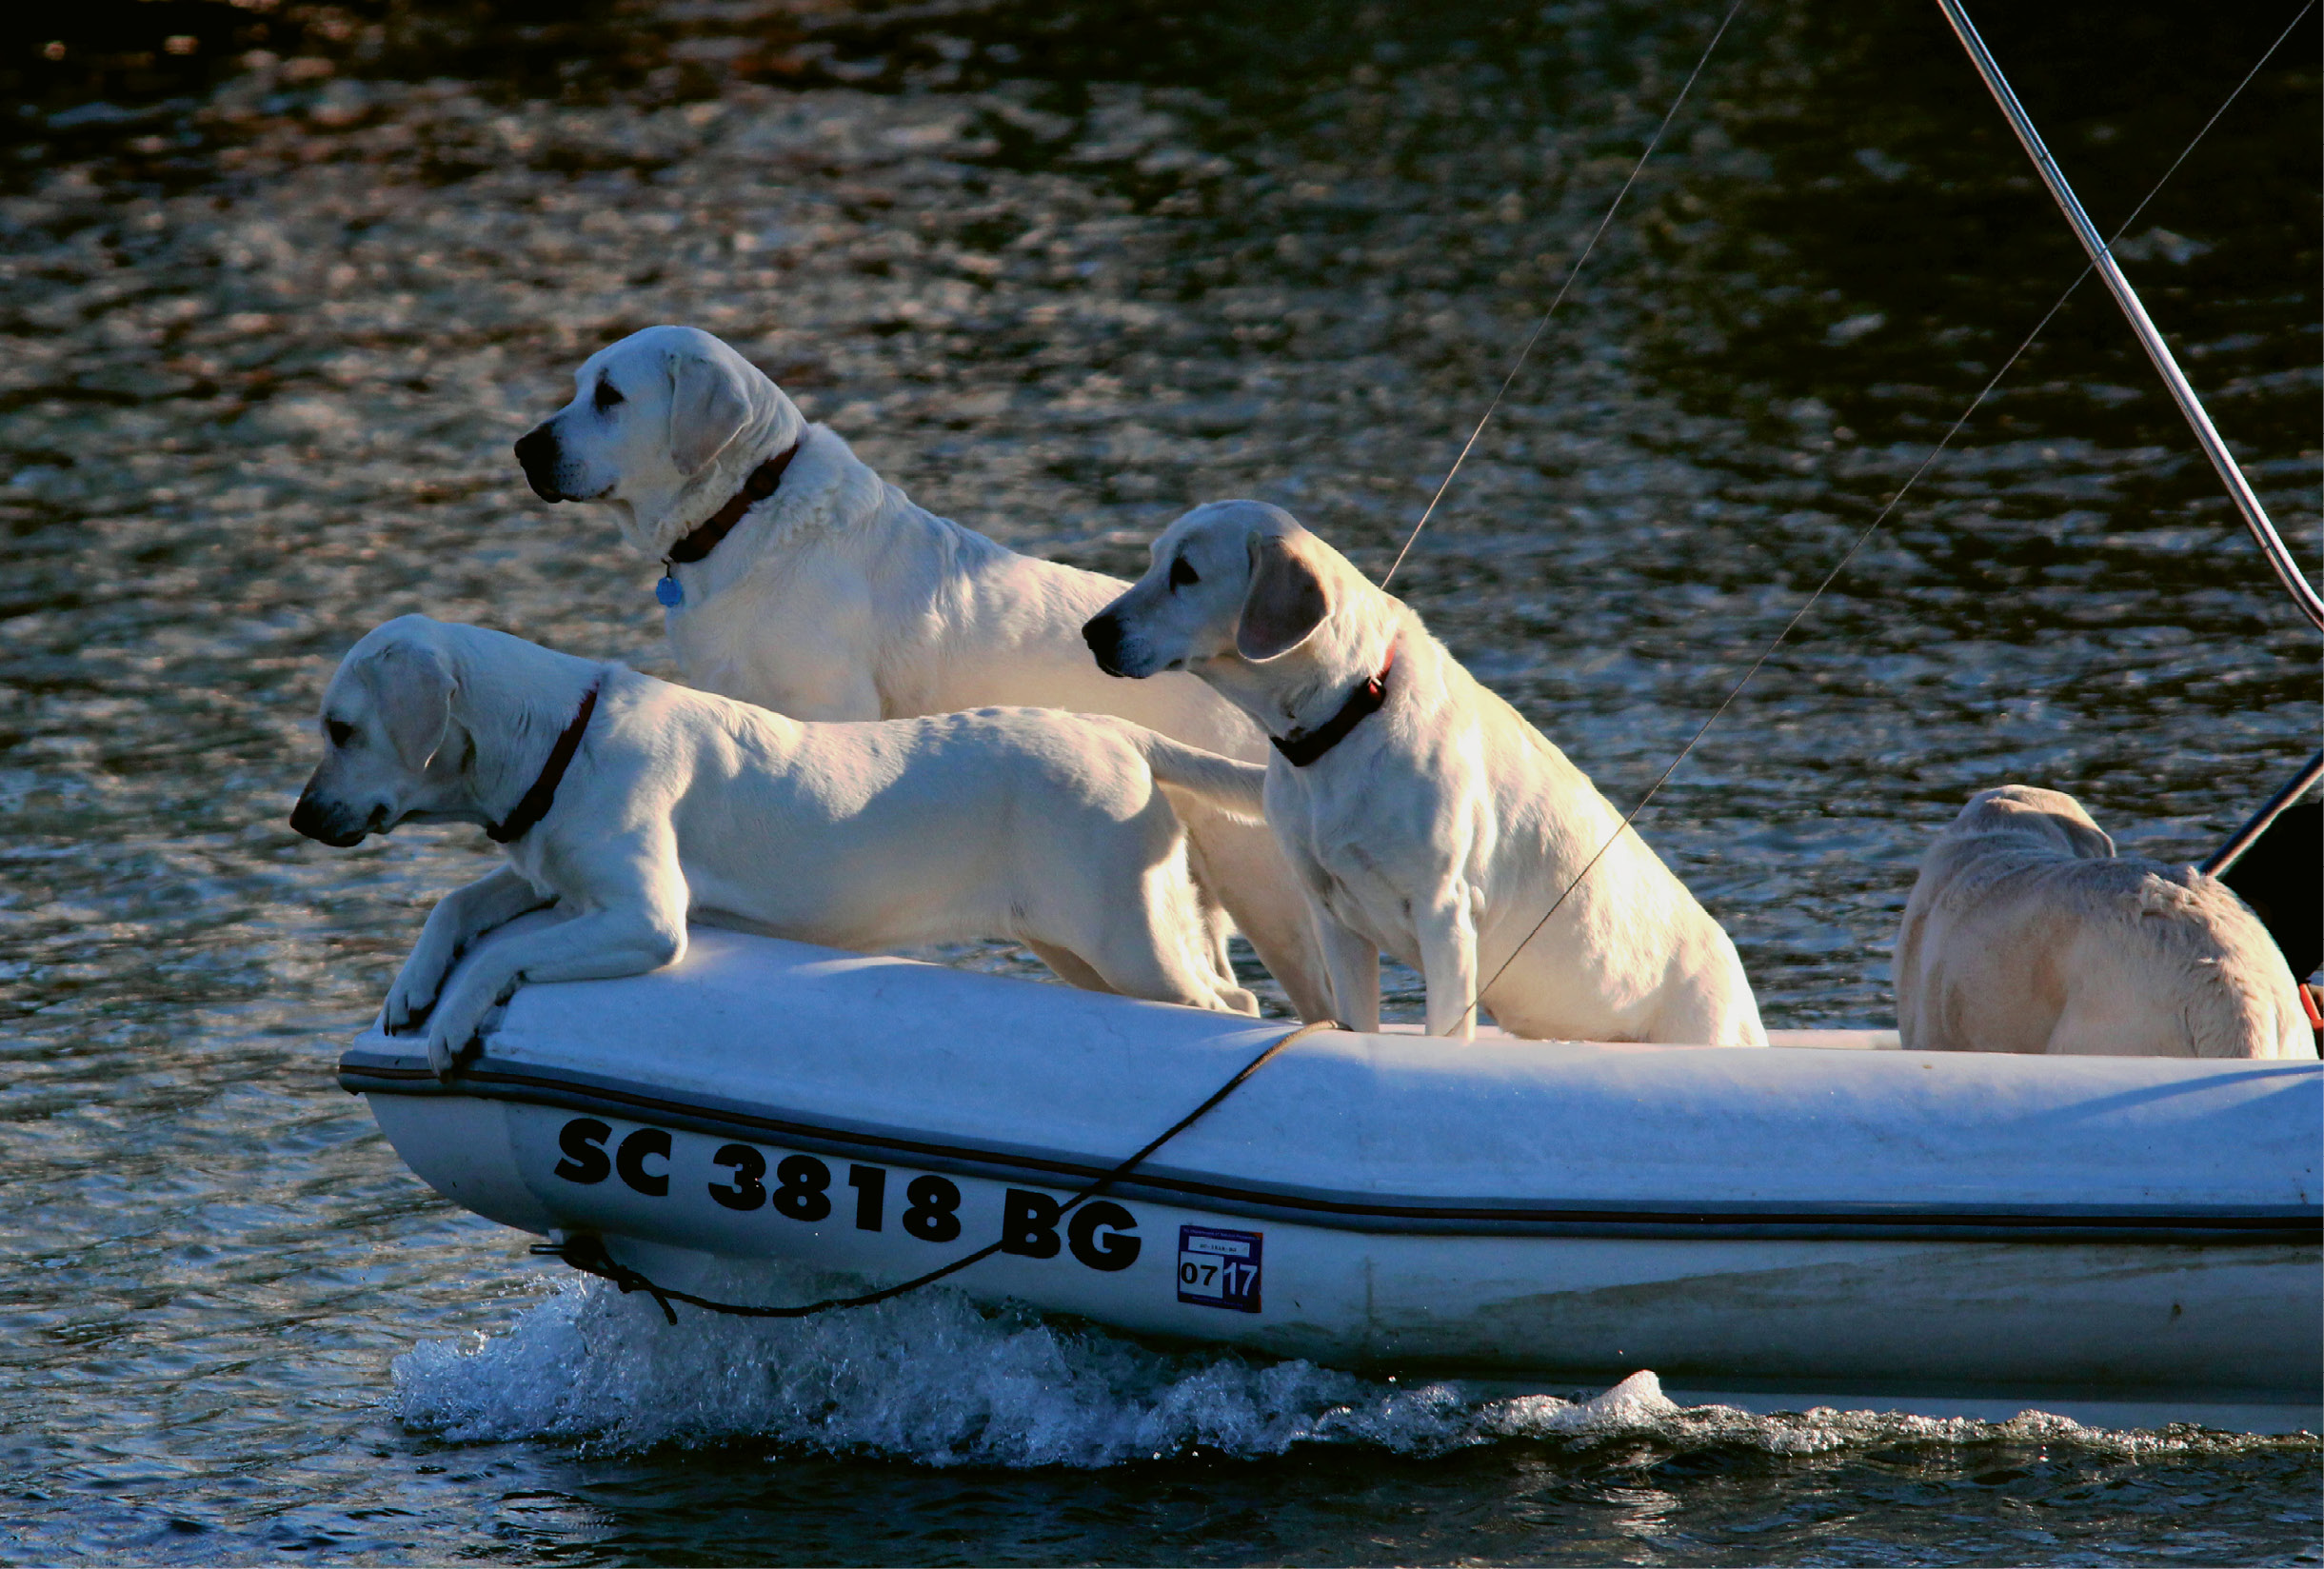 Lab-a-boat Retrievers by Harry Phillips  {Amateur category} - Captain's best friends cruising up the Cooper River in February 2015